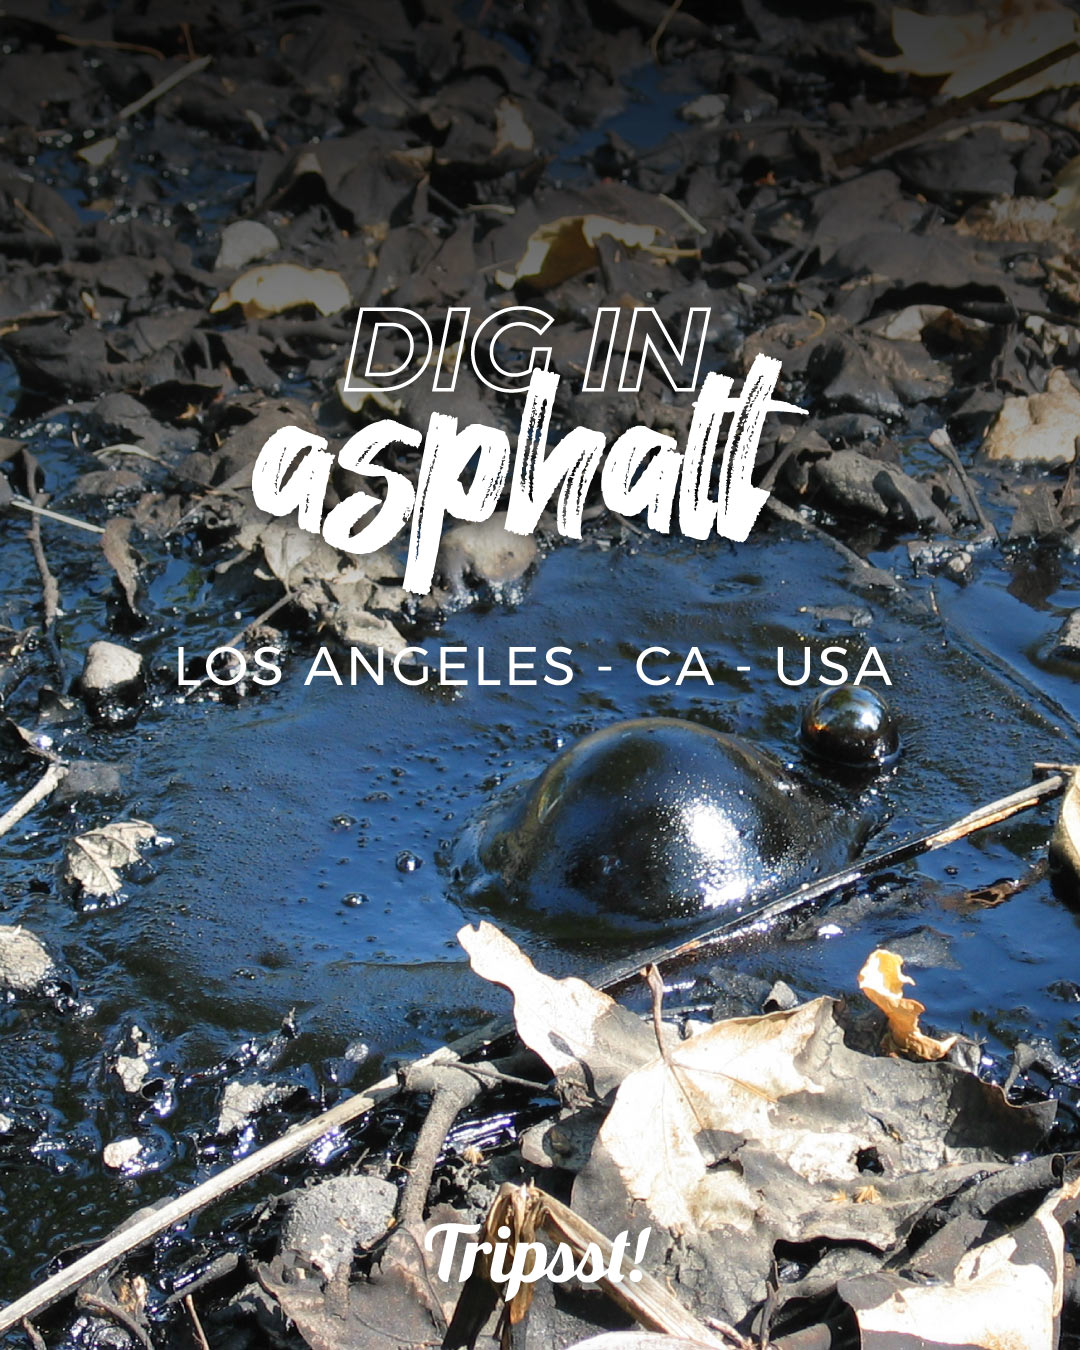 A tar pit, covered in dusty and dry leaves, with a bubble of asphalt in the center.